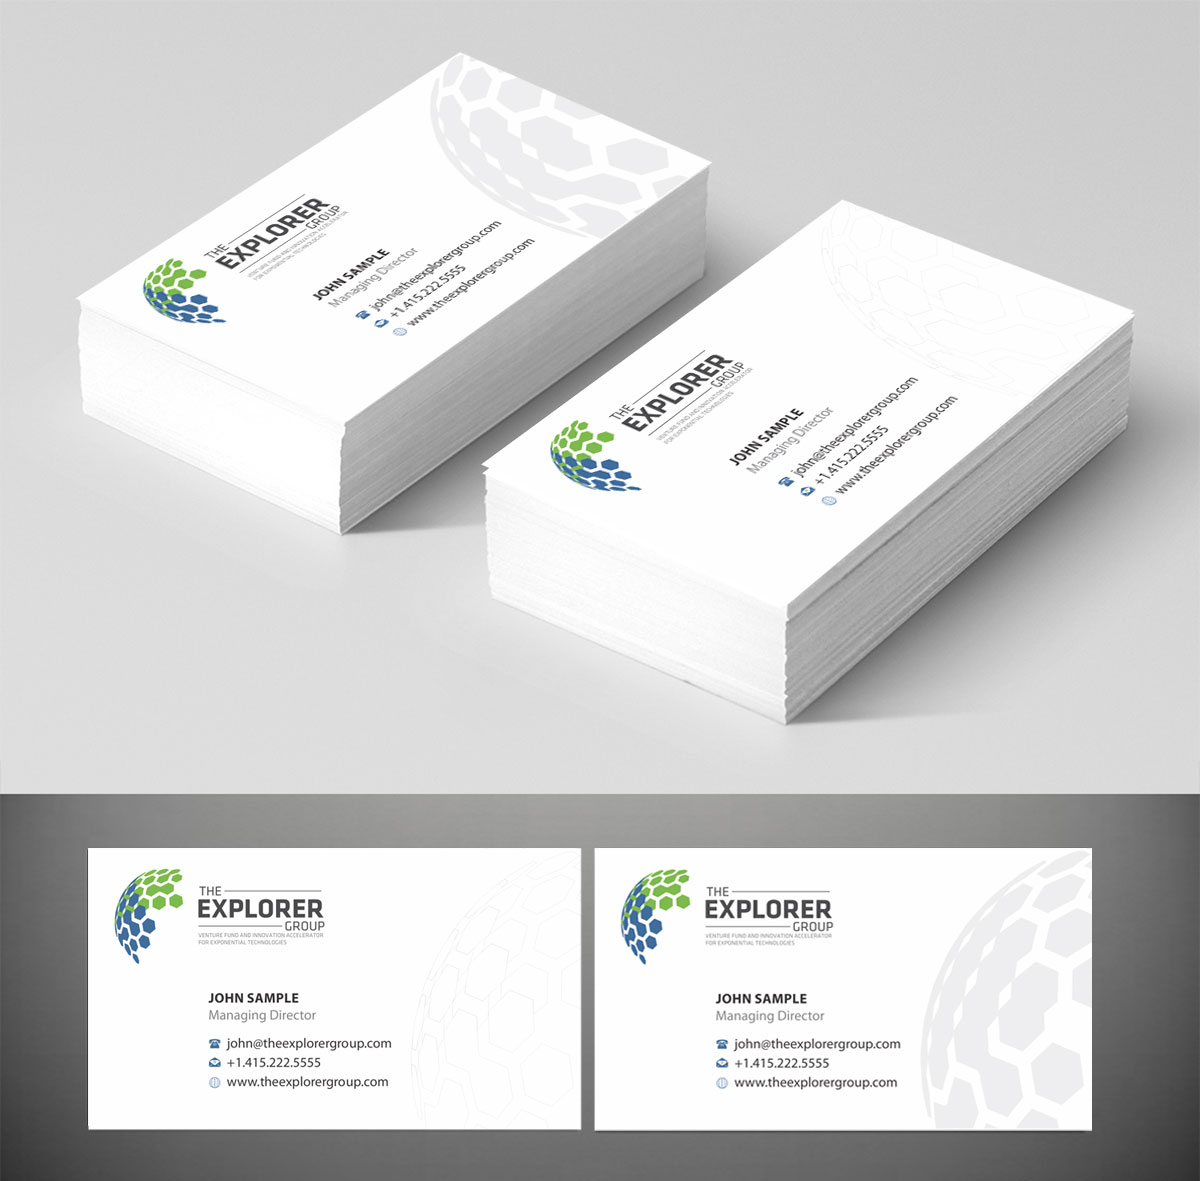 Serious modern business business card design for the explorer business card design by jetweb for the explorer group design 6652388 colourmoves